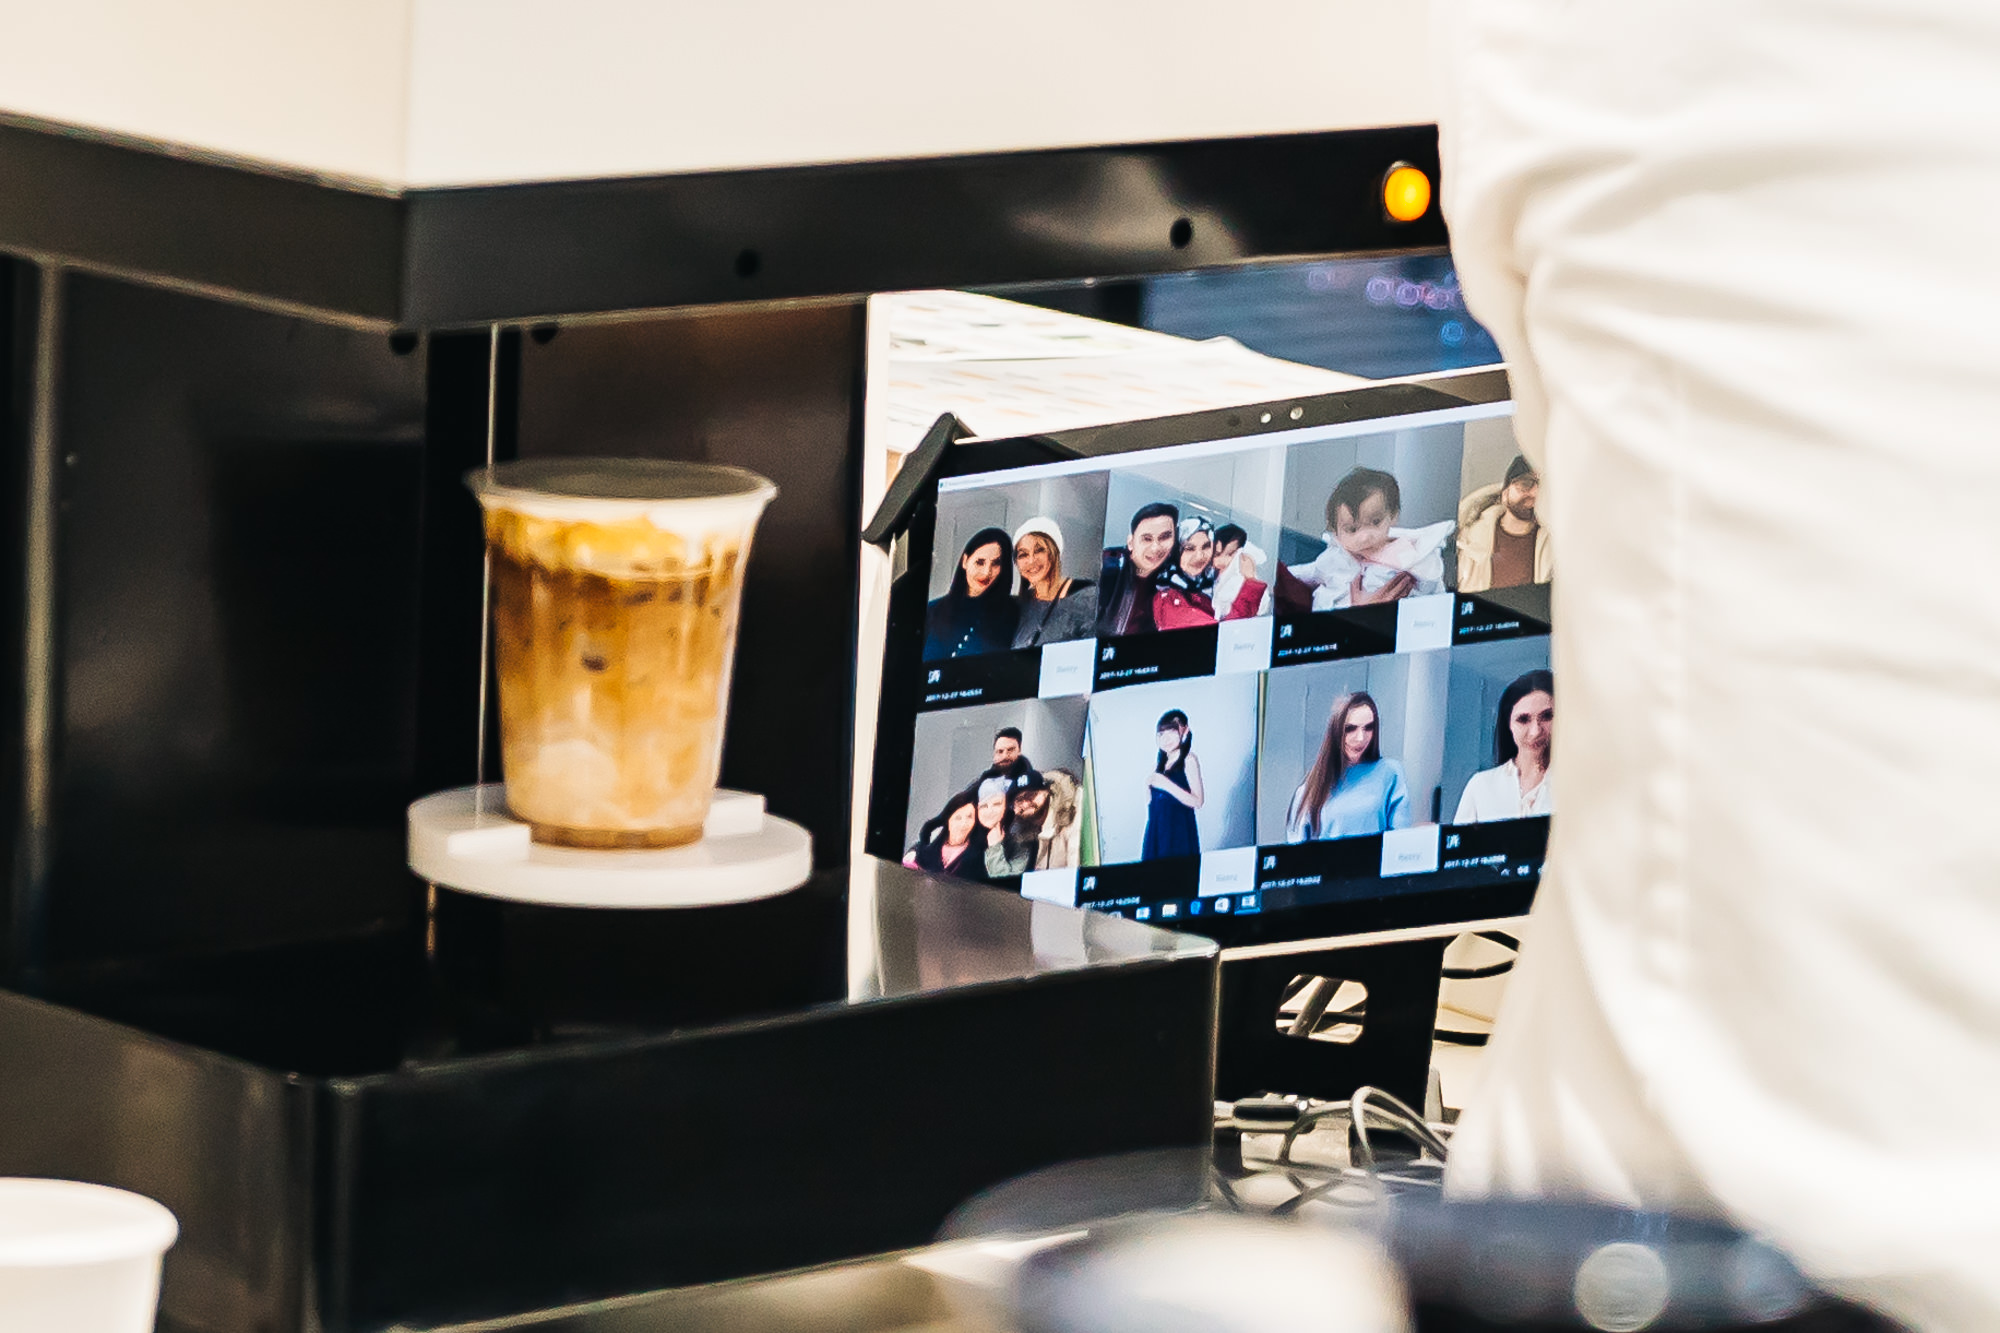 THERE'S OUR PICTURE THAT'S ABOUT TO BE PRINTED ON OUR COFFEE!